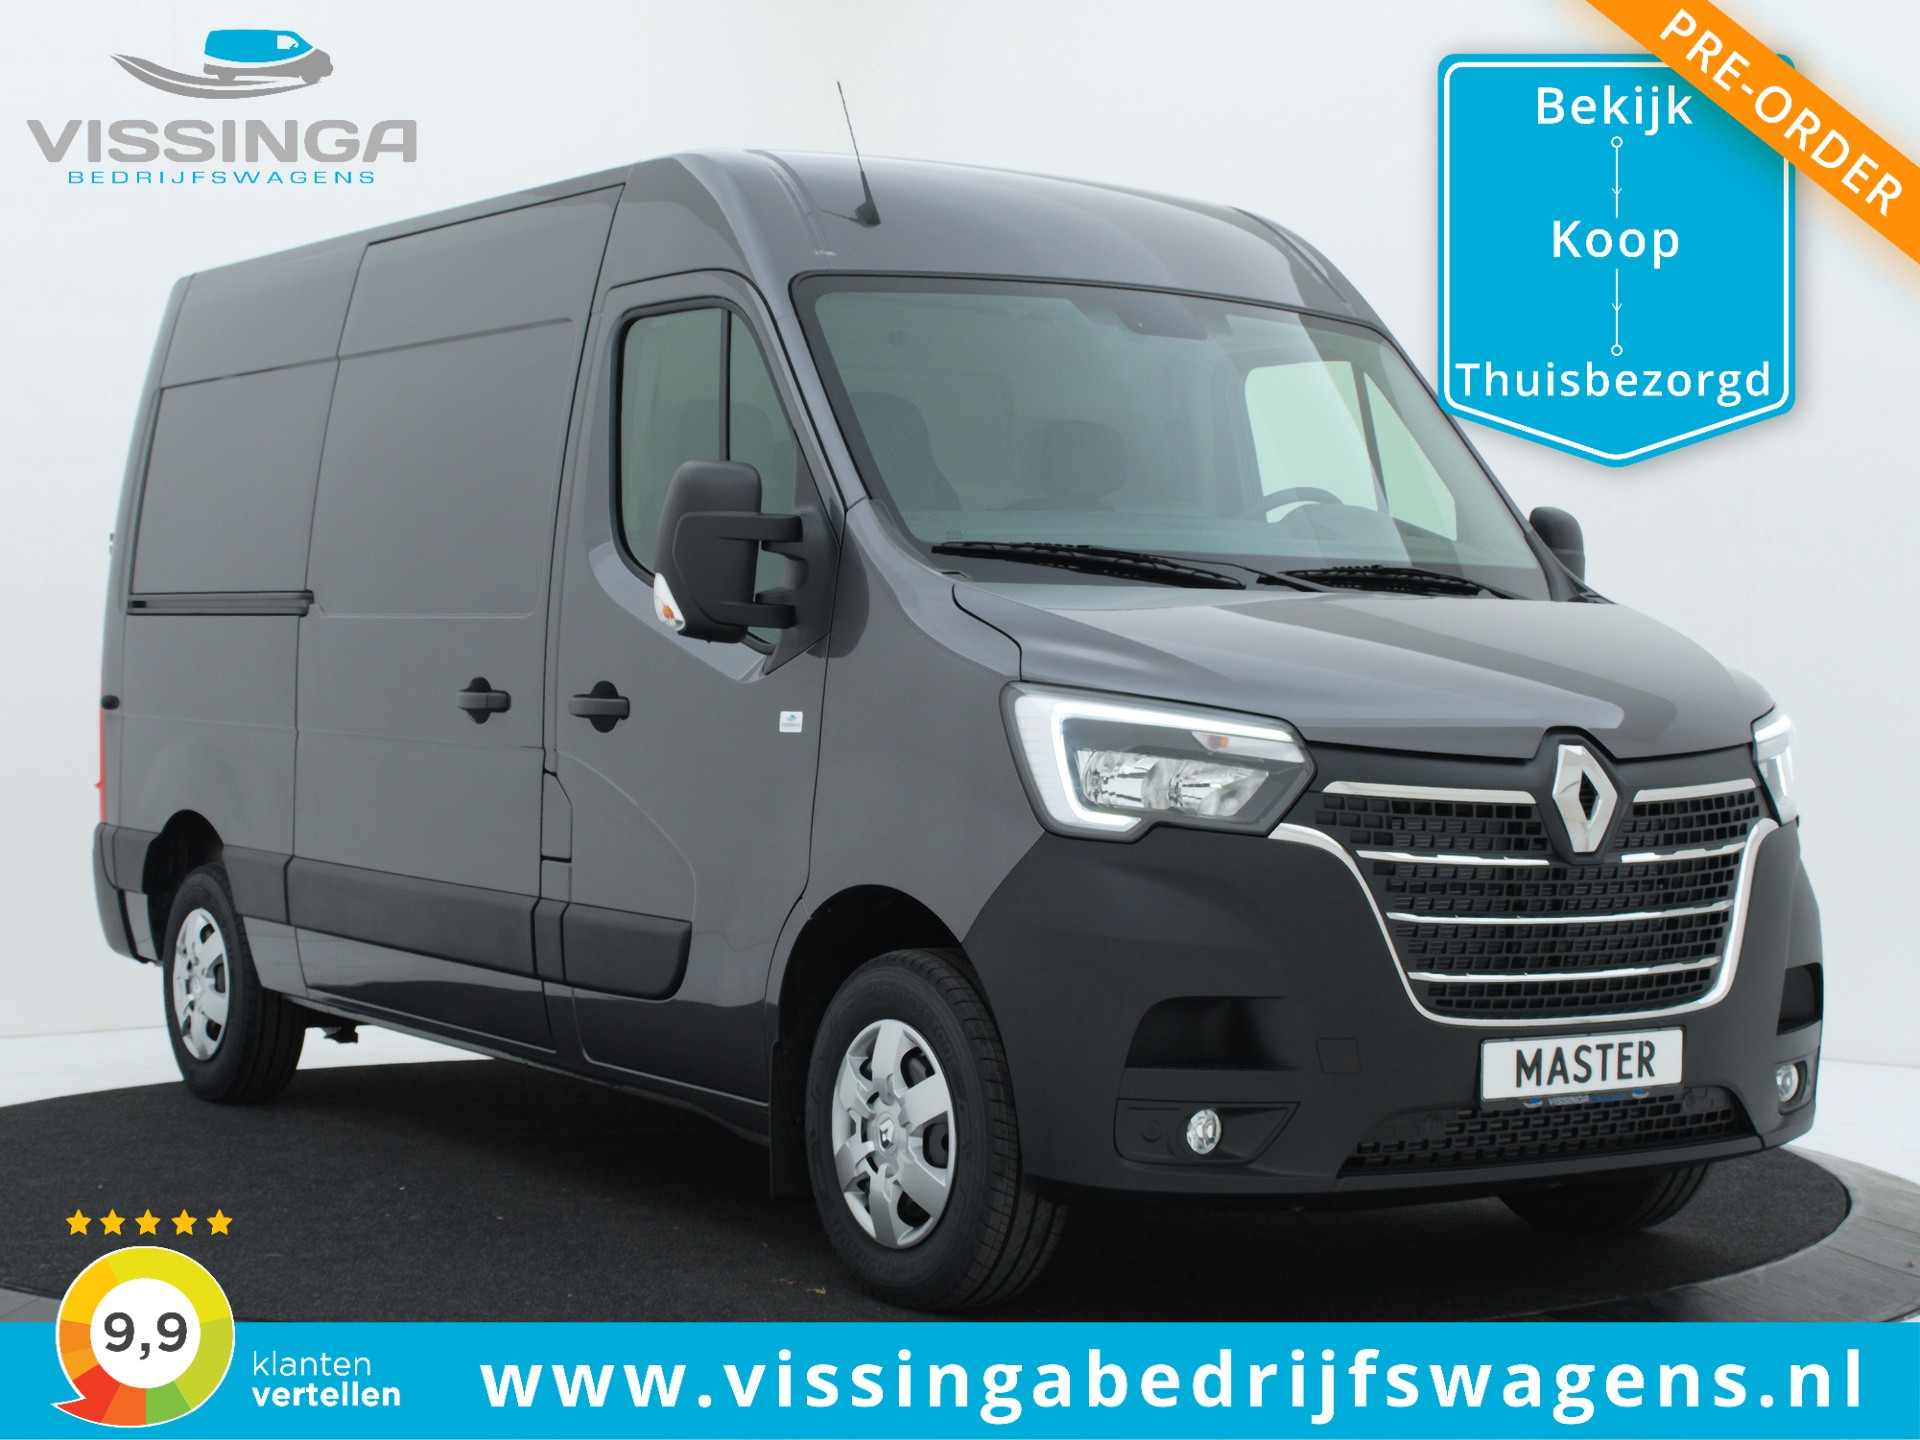 Renault Master T35 2.3 dCi L2H2 150 pk Twin-Turbo Light Duty